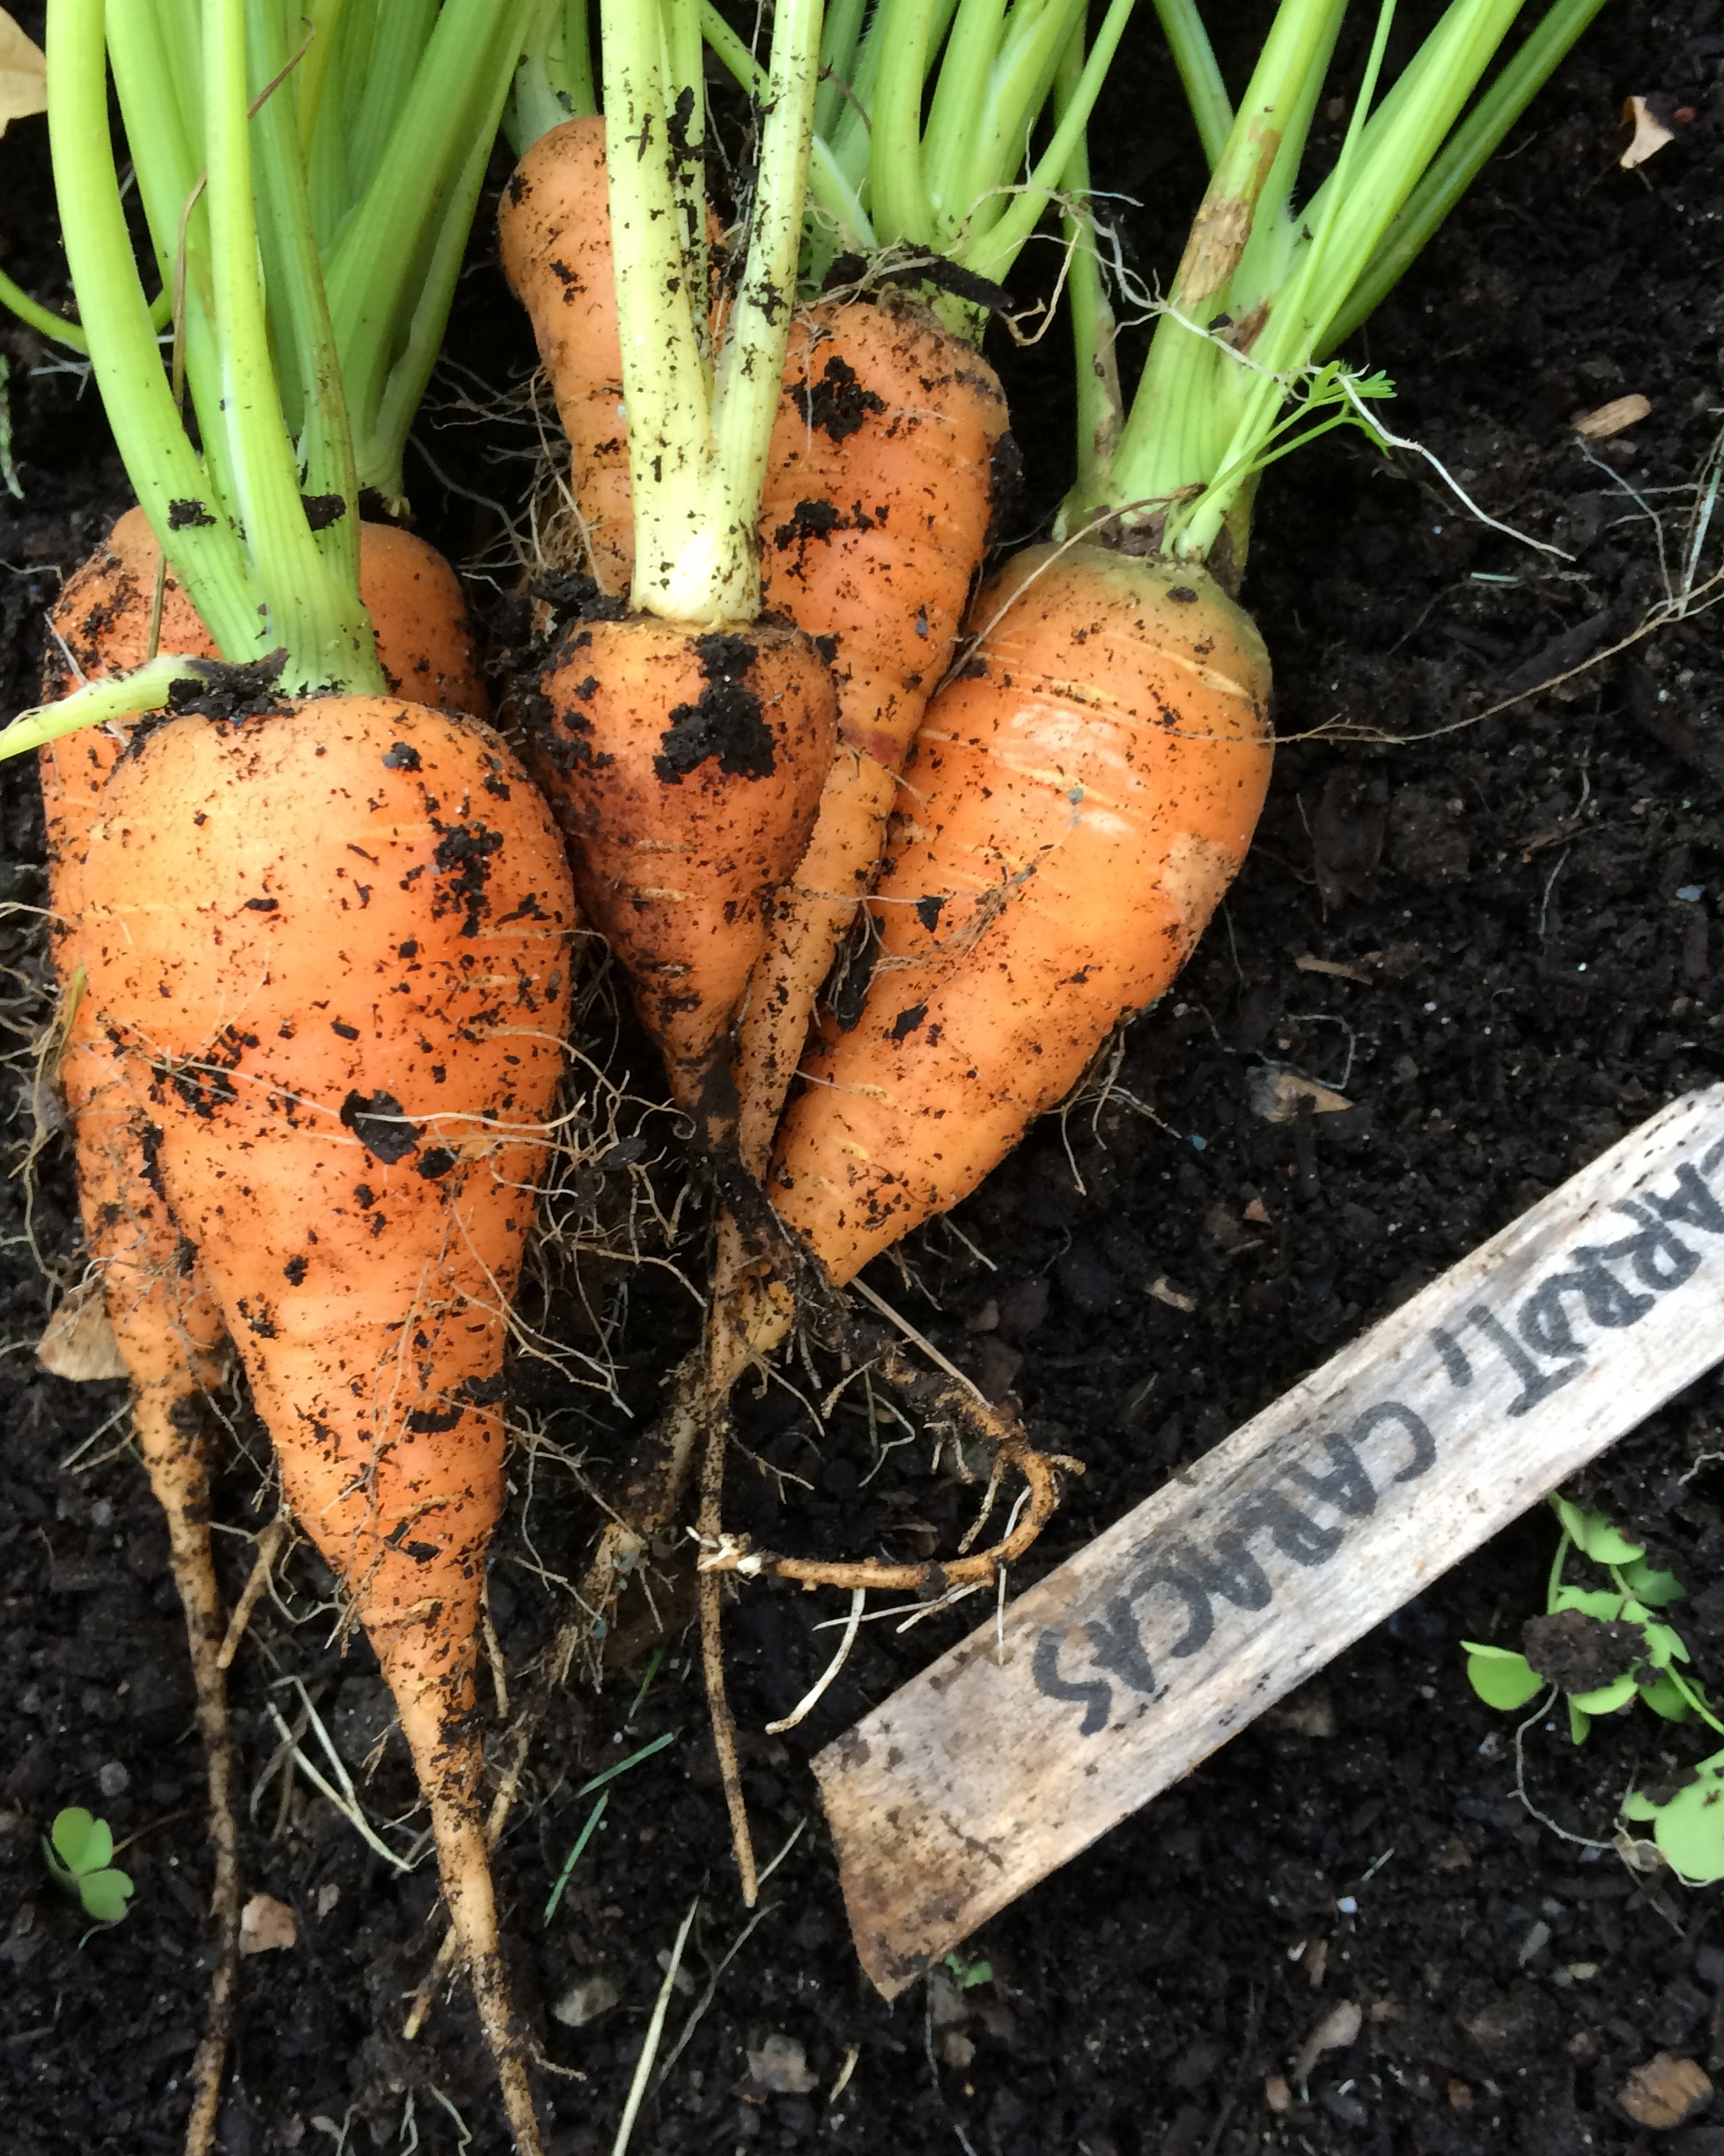 Photo by The Tipsy Tomato. Carrots, sown from Johnny's Selected Seeds, in late summer.